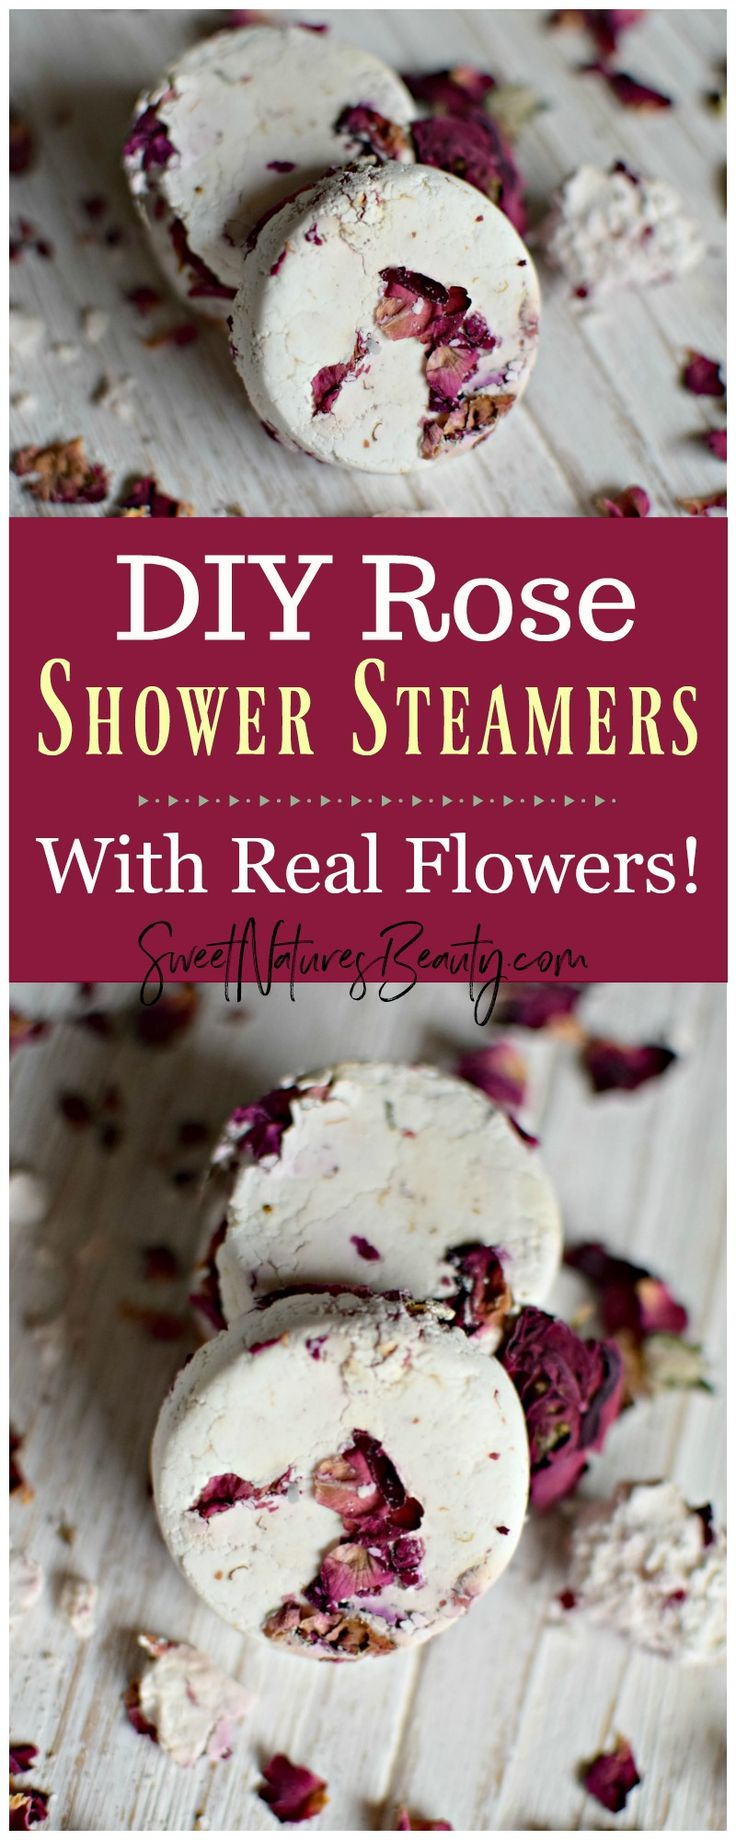 These DIY Rose Shower Steamers use essential oils for aromatherapy. Click through to learn how to make DIY Rose Shower Steamers.